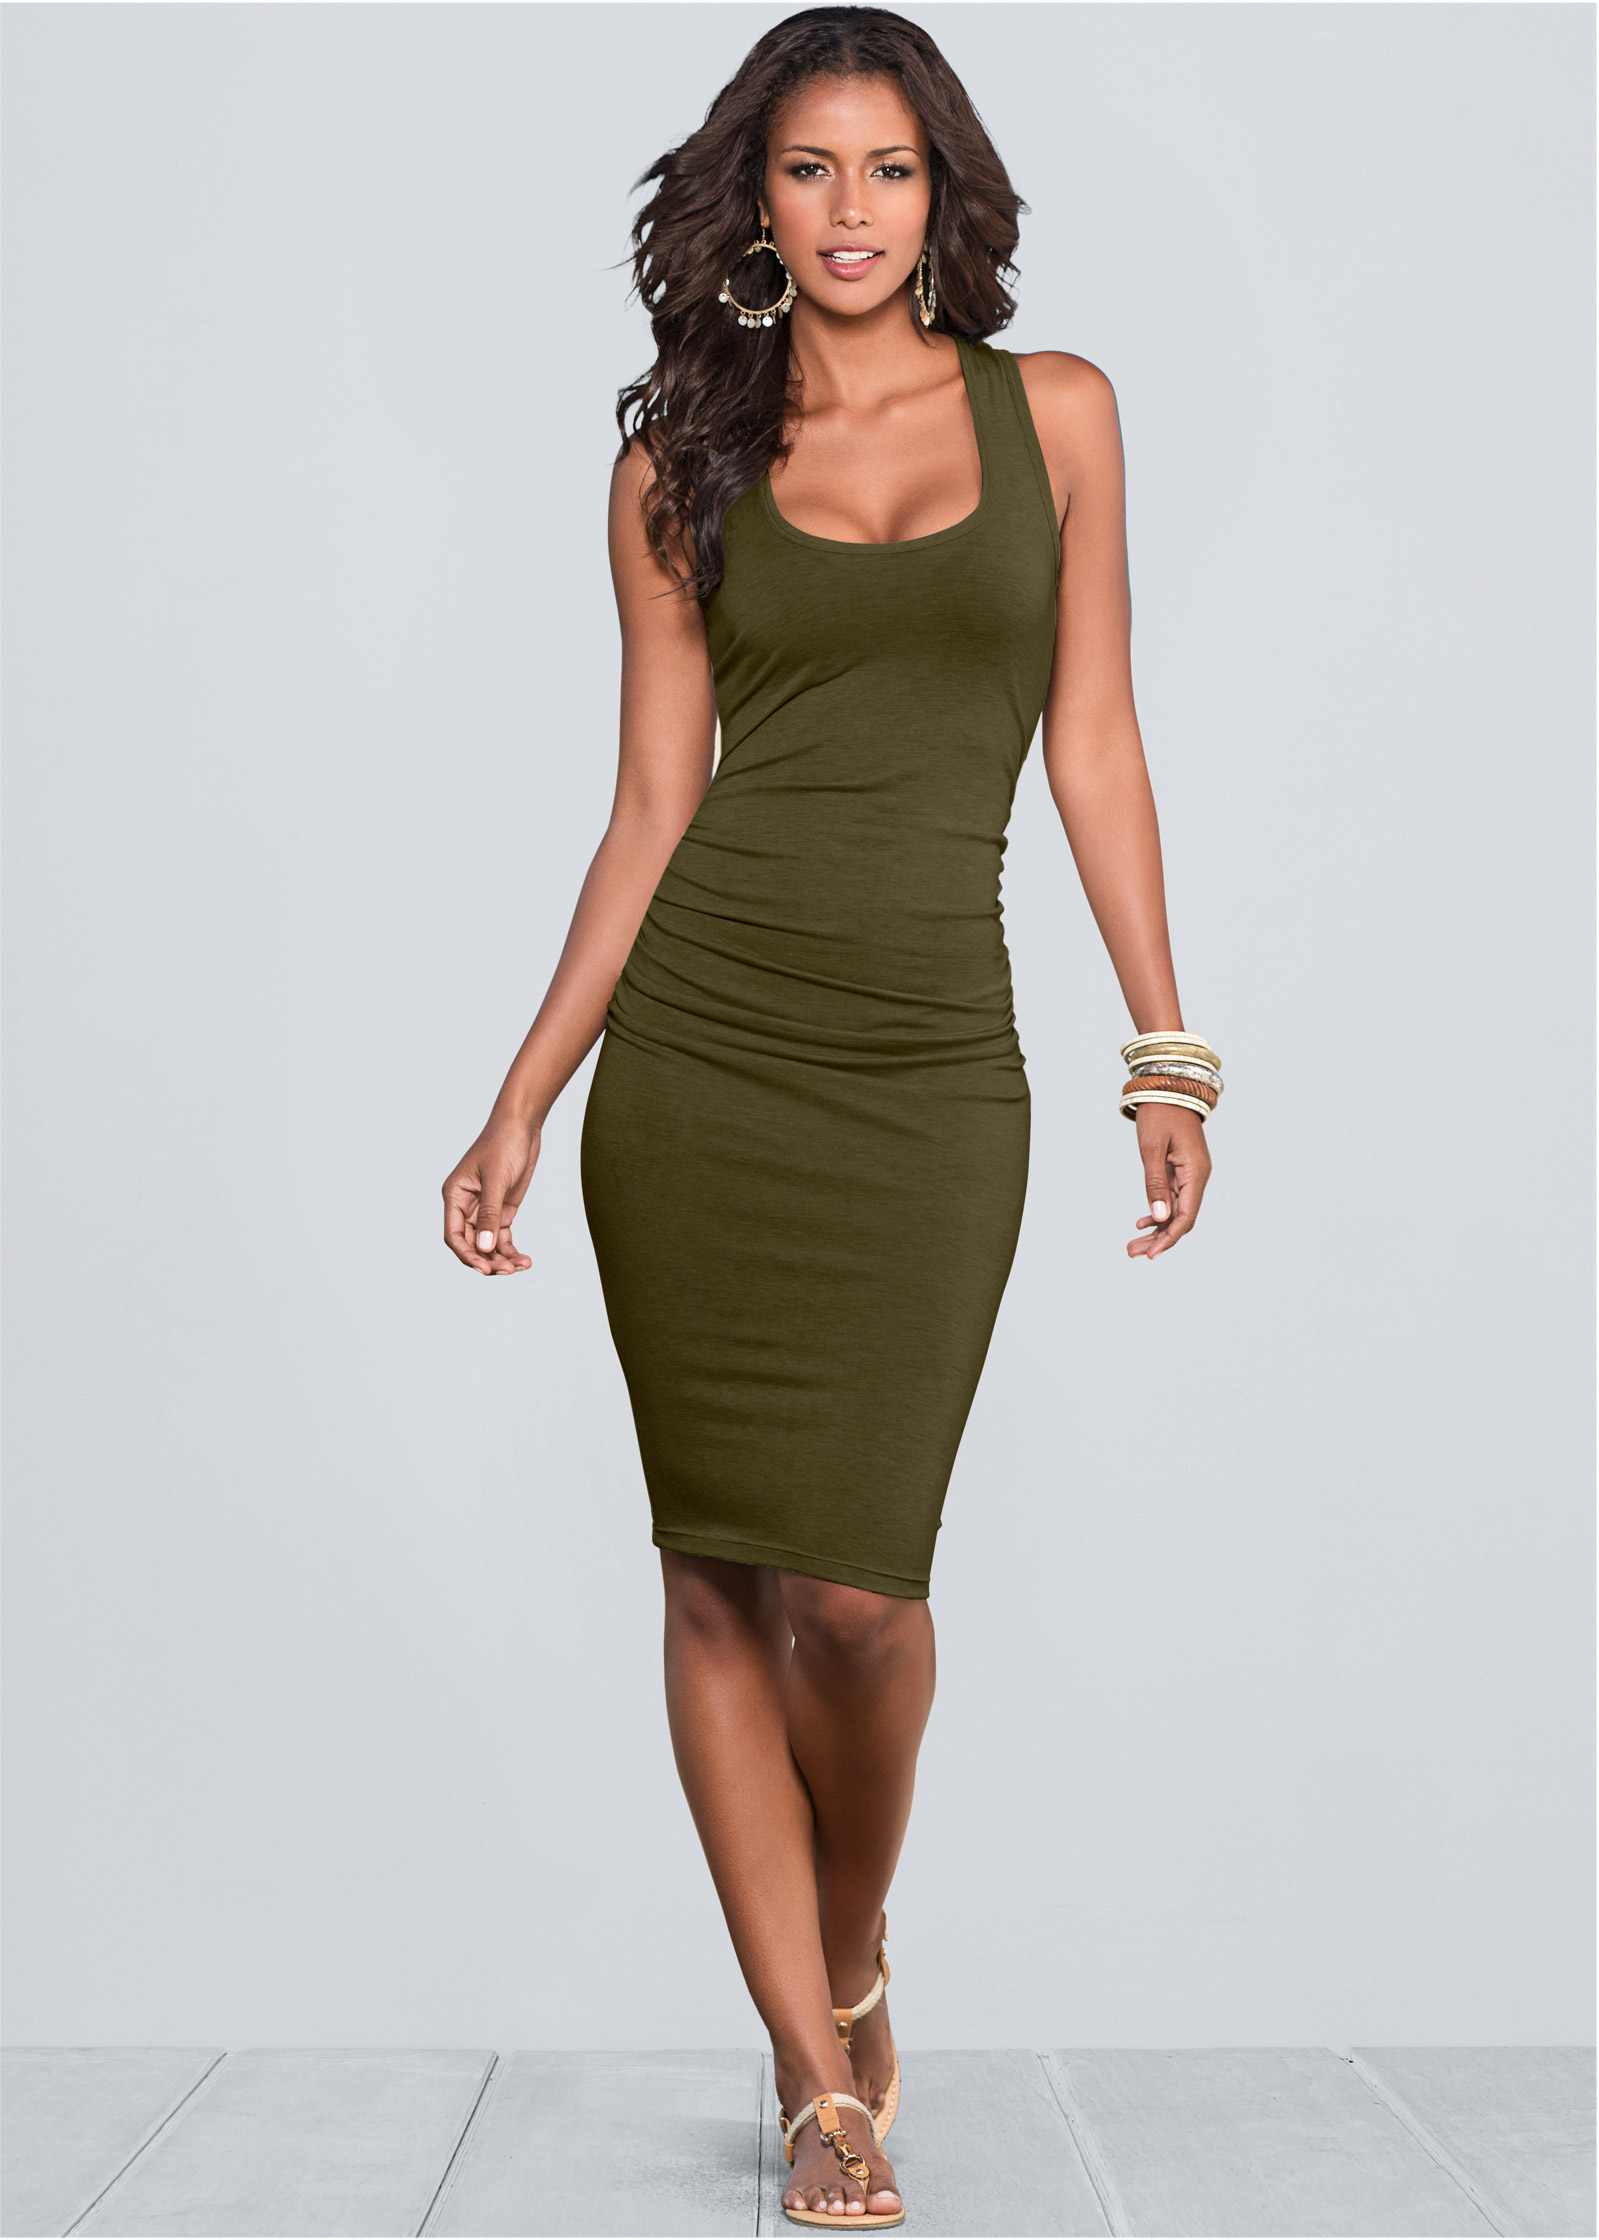 Casual Formal Dresses for Women – Fashion dresses